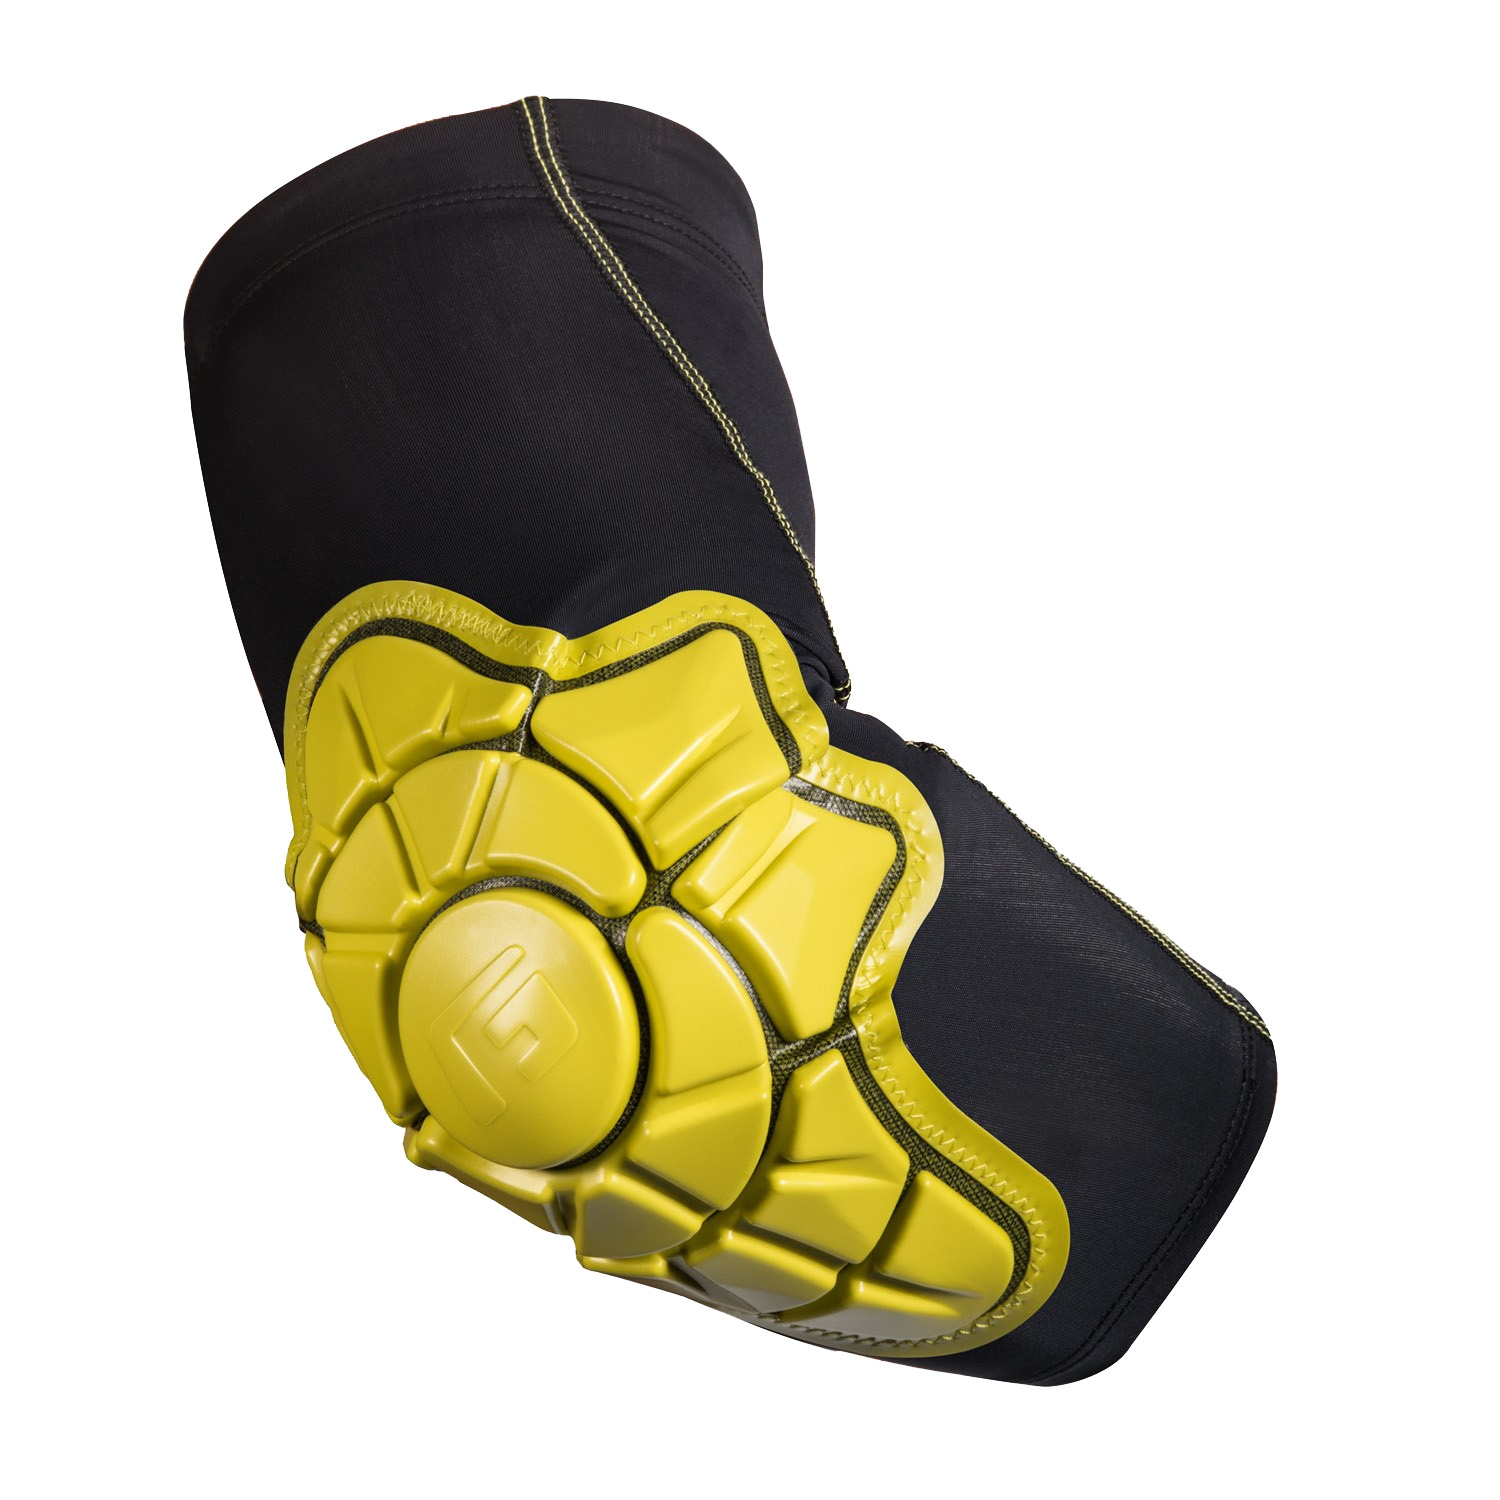 Coudières G-Form Pro-X Iconic Yellow - XS